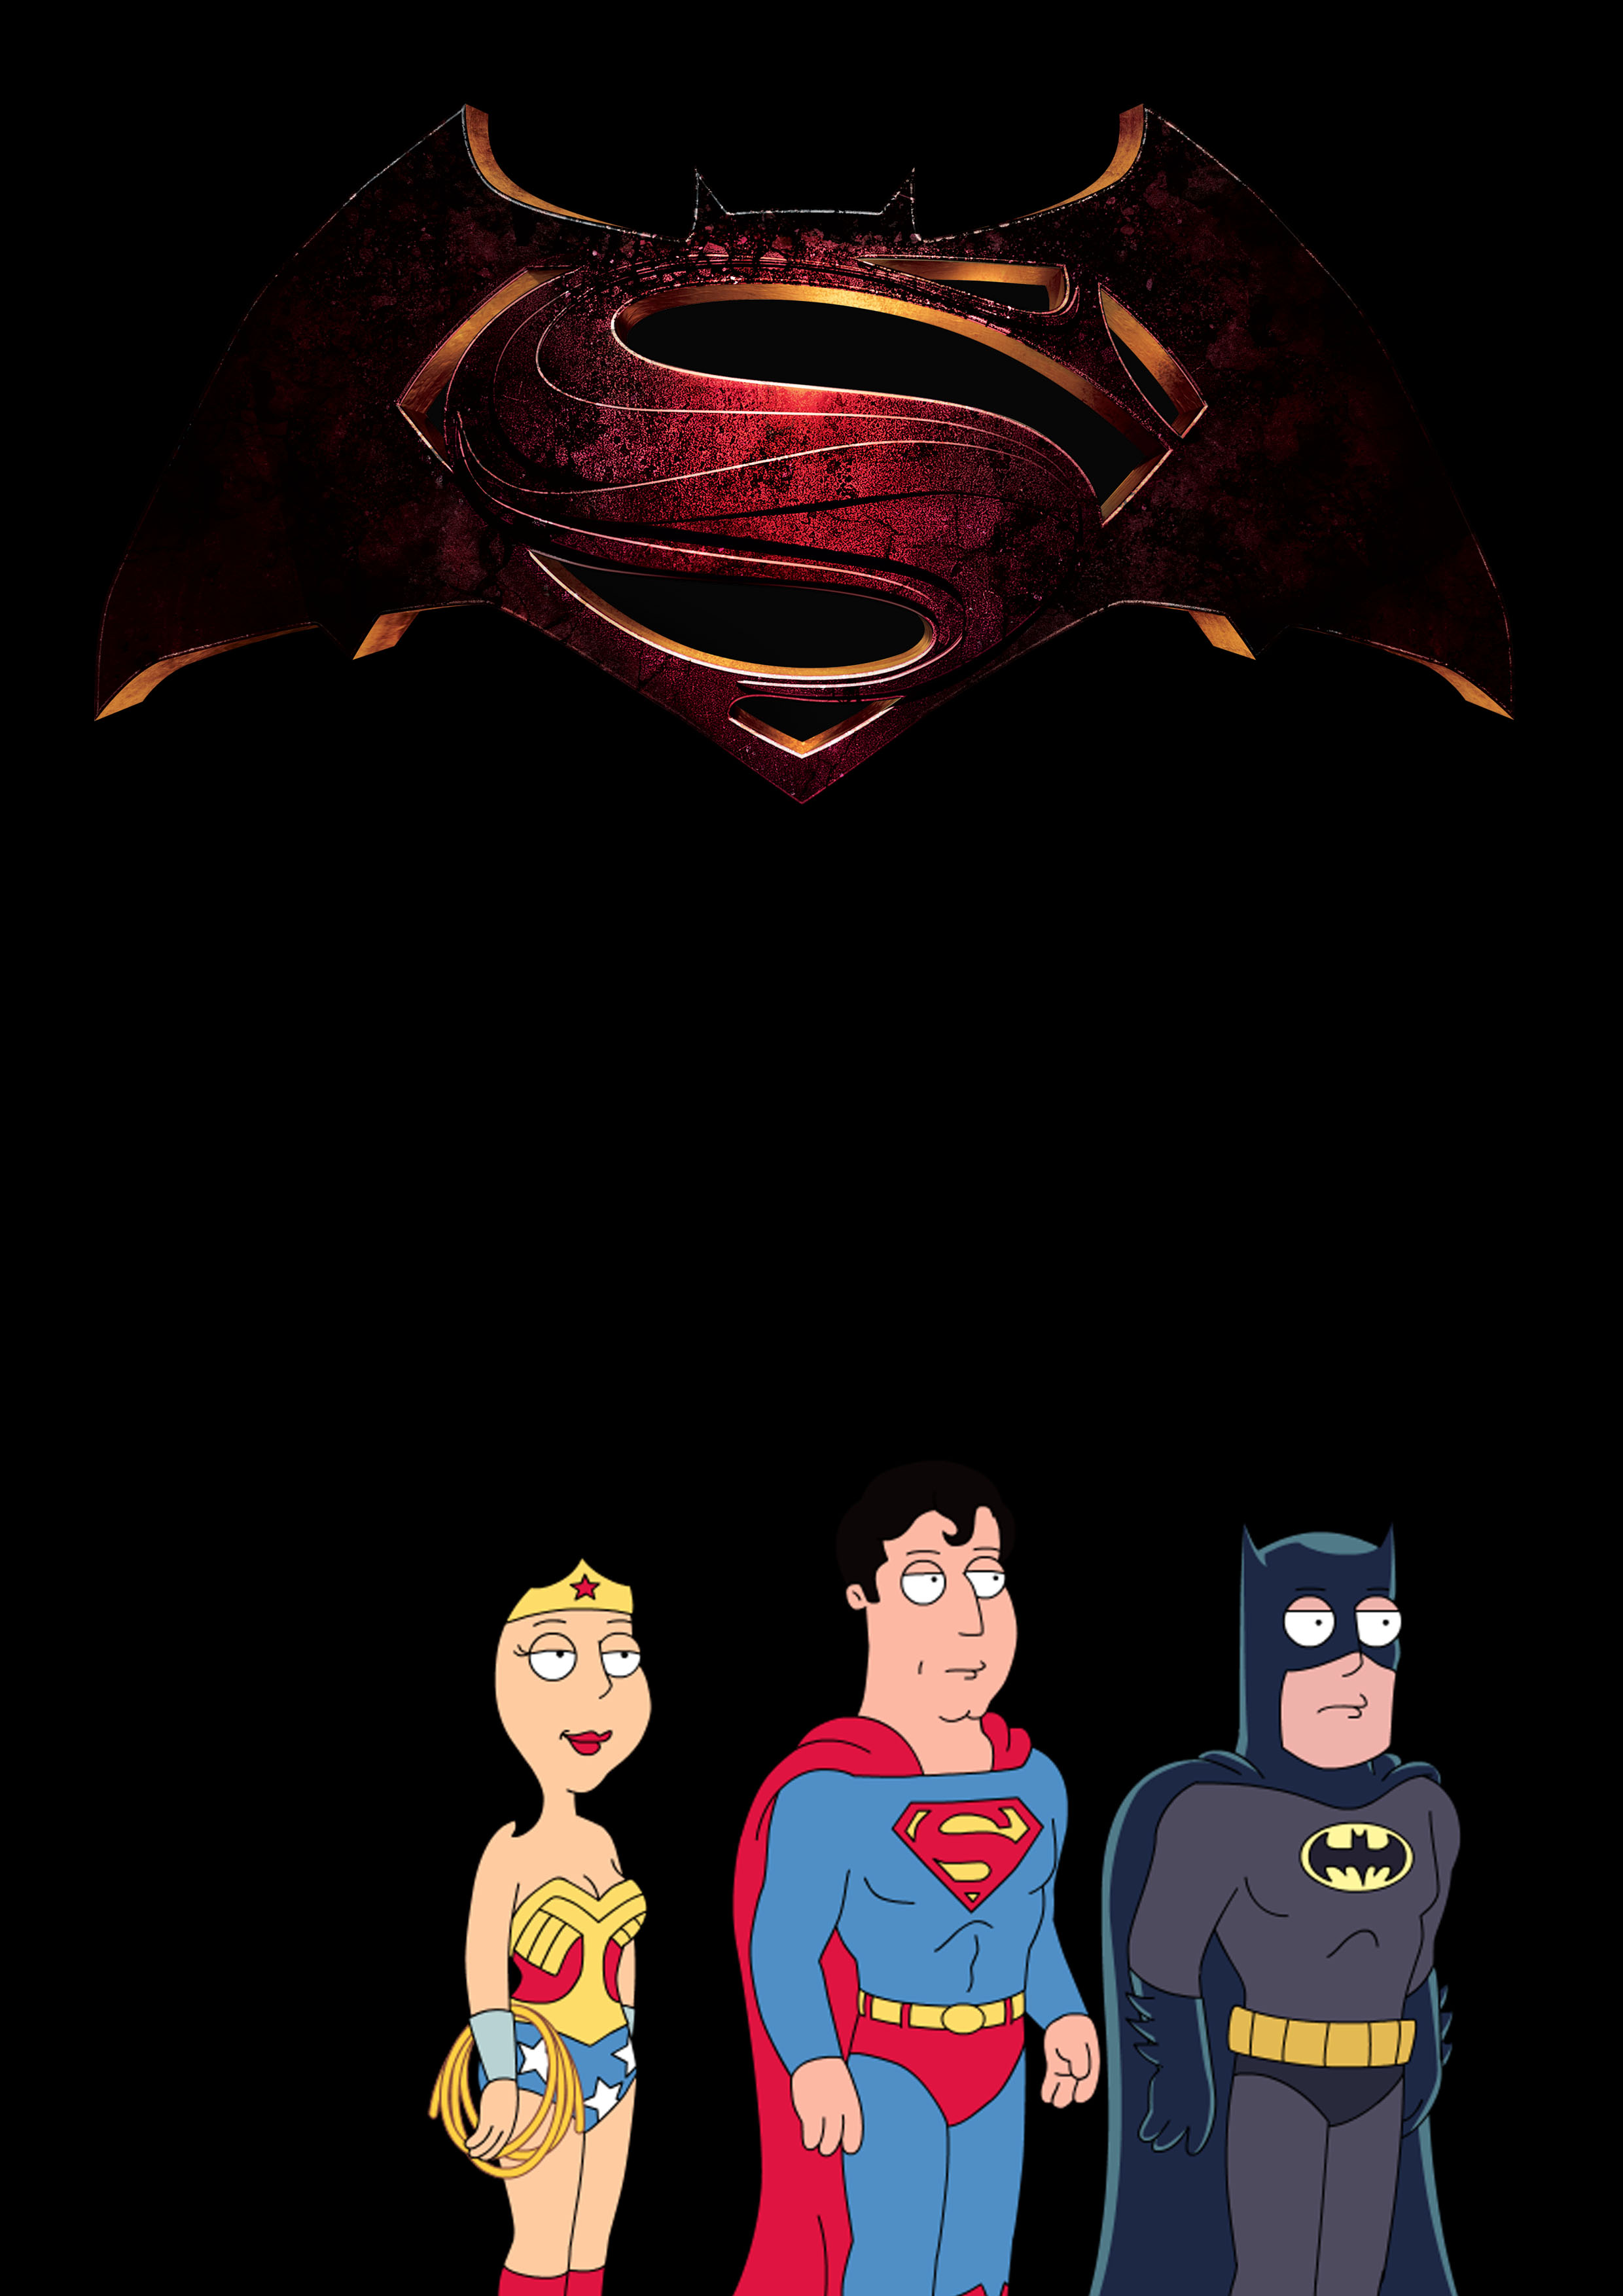 family guy images batman v superman: dawn of justice hd wallpaper